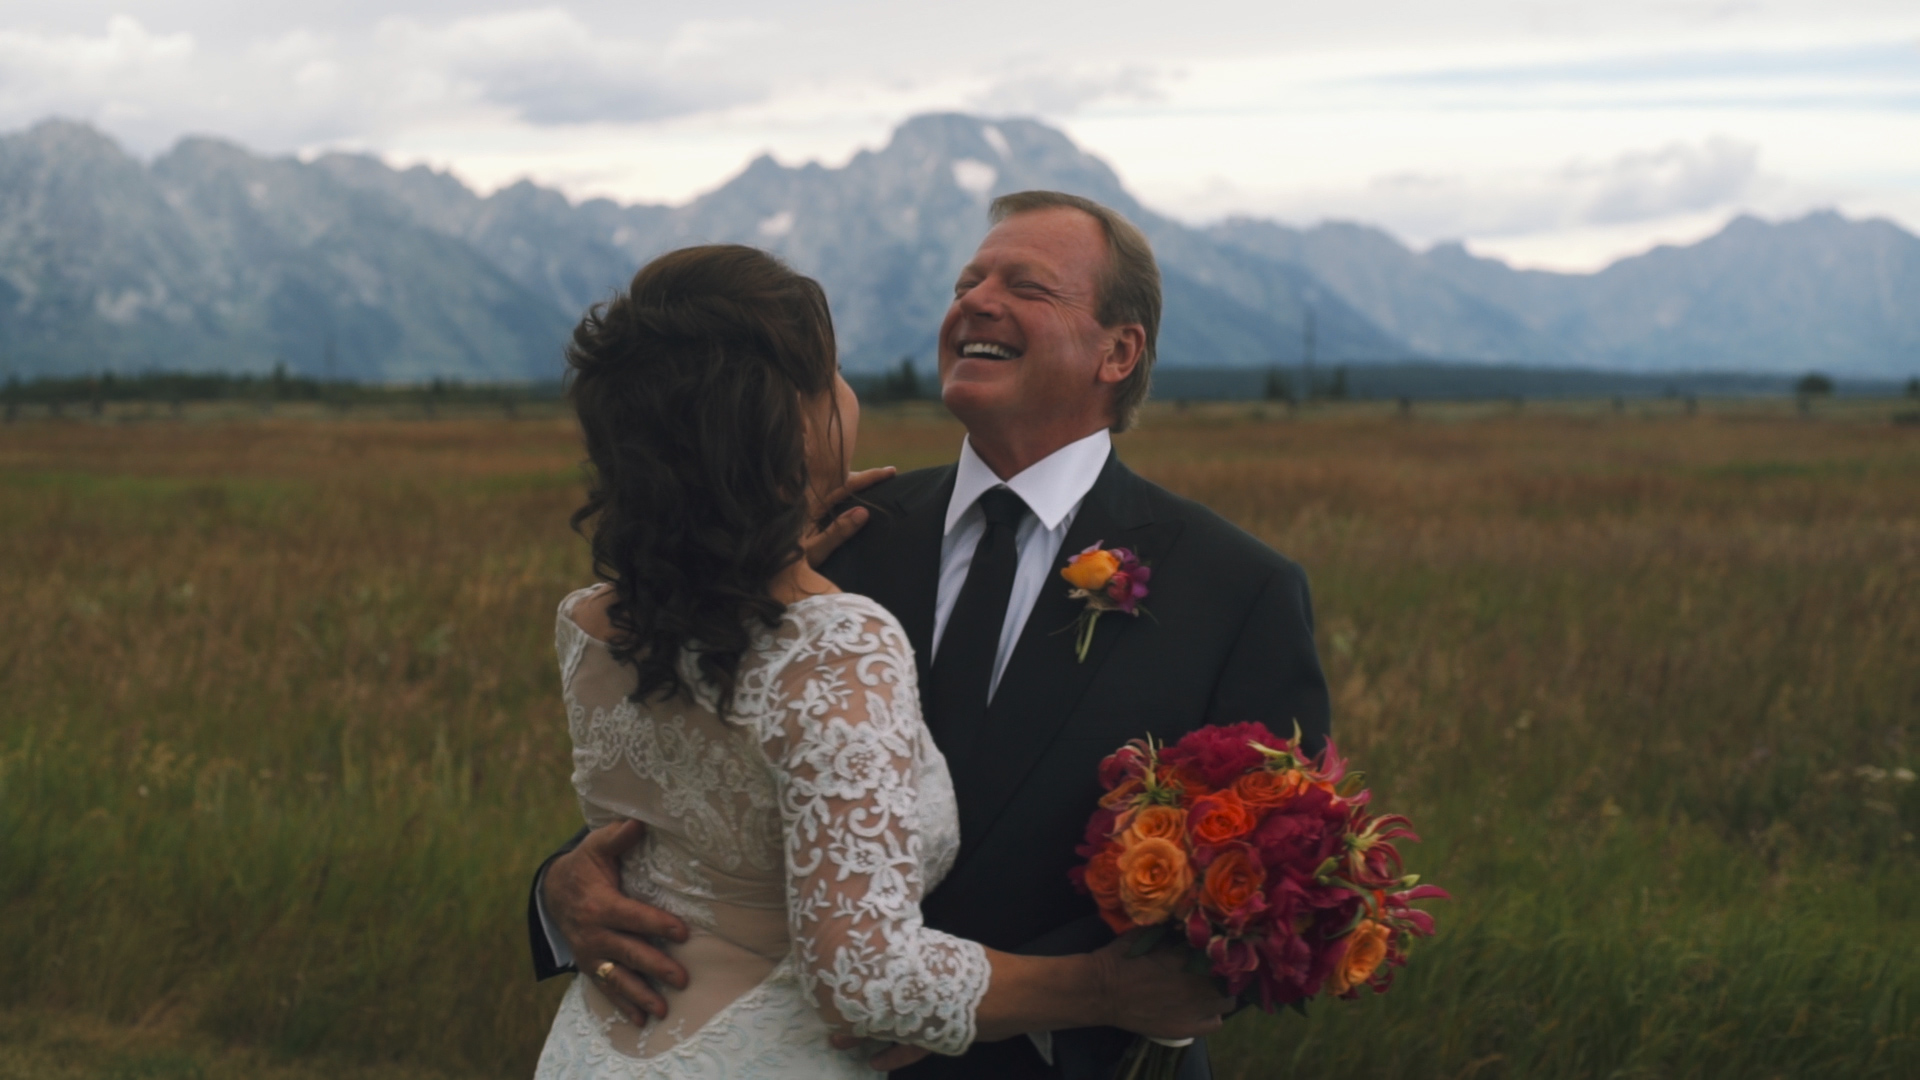 Laurie + Greg | Jackson, Wyoming | Lost Creek Ranch